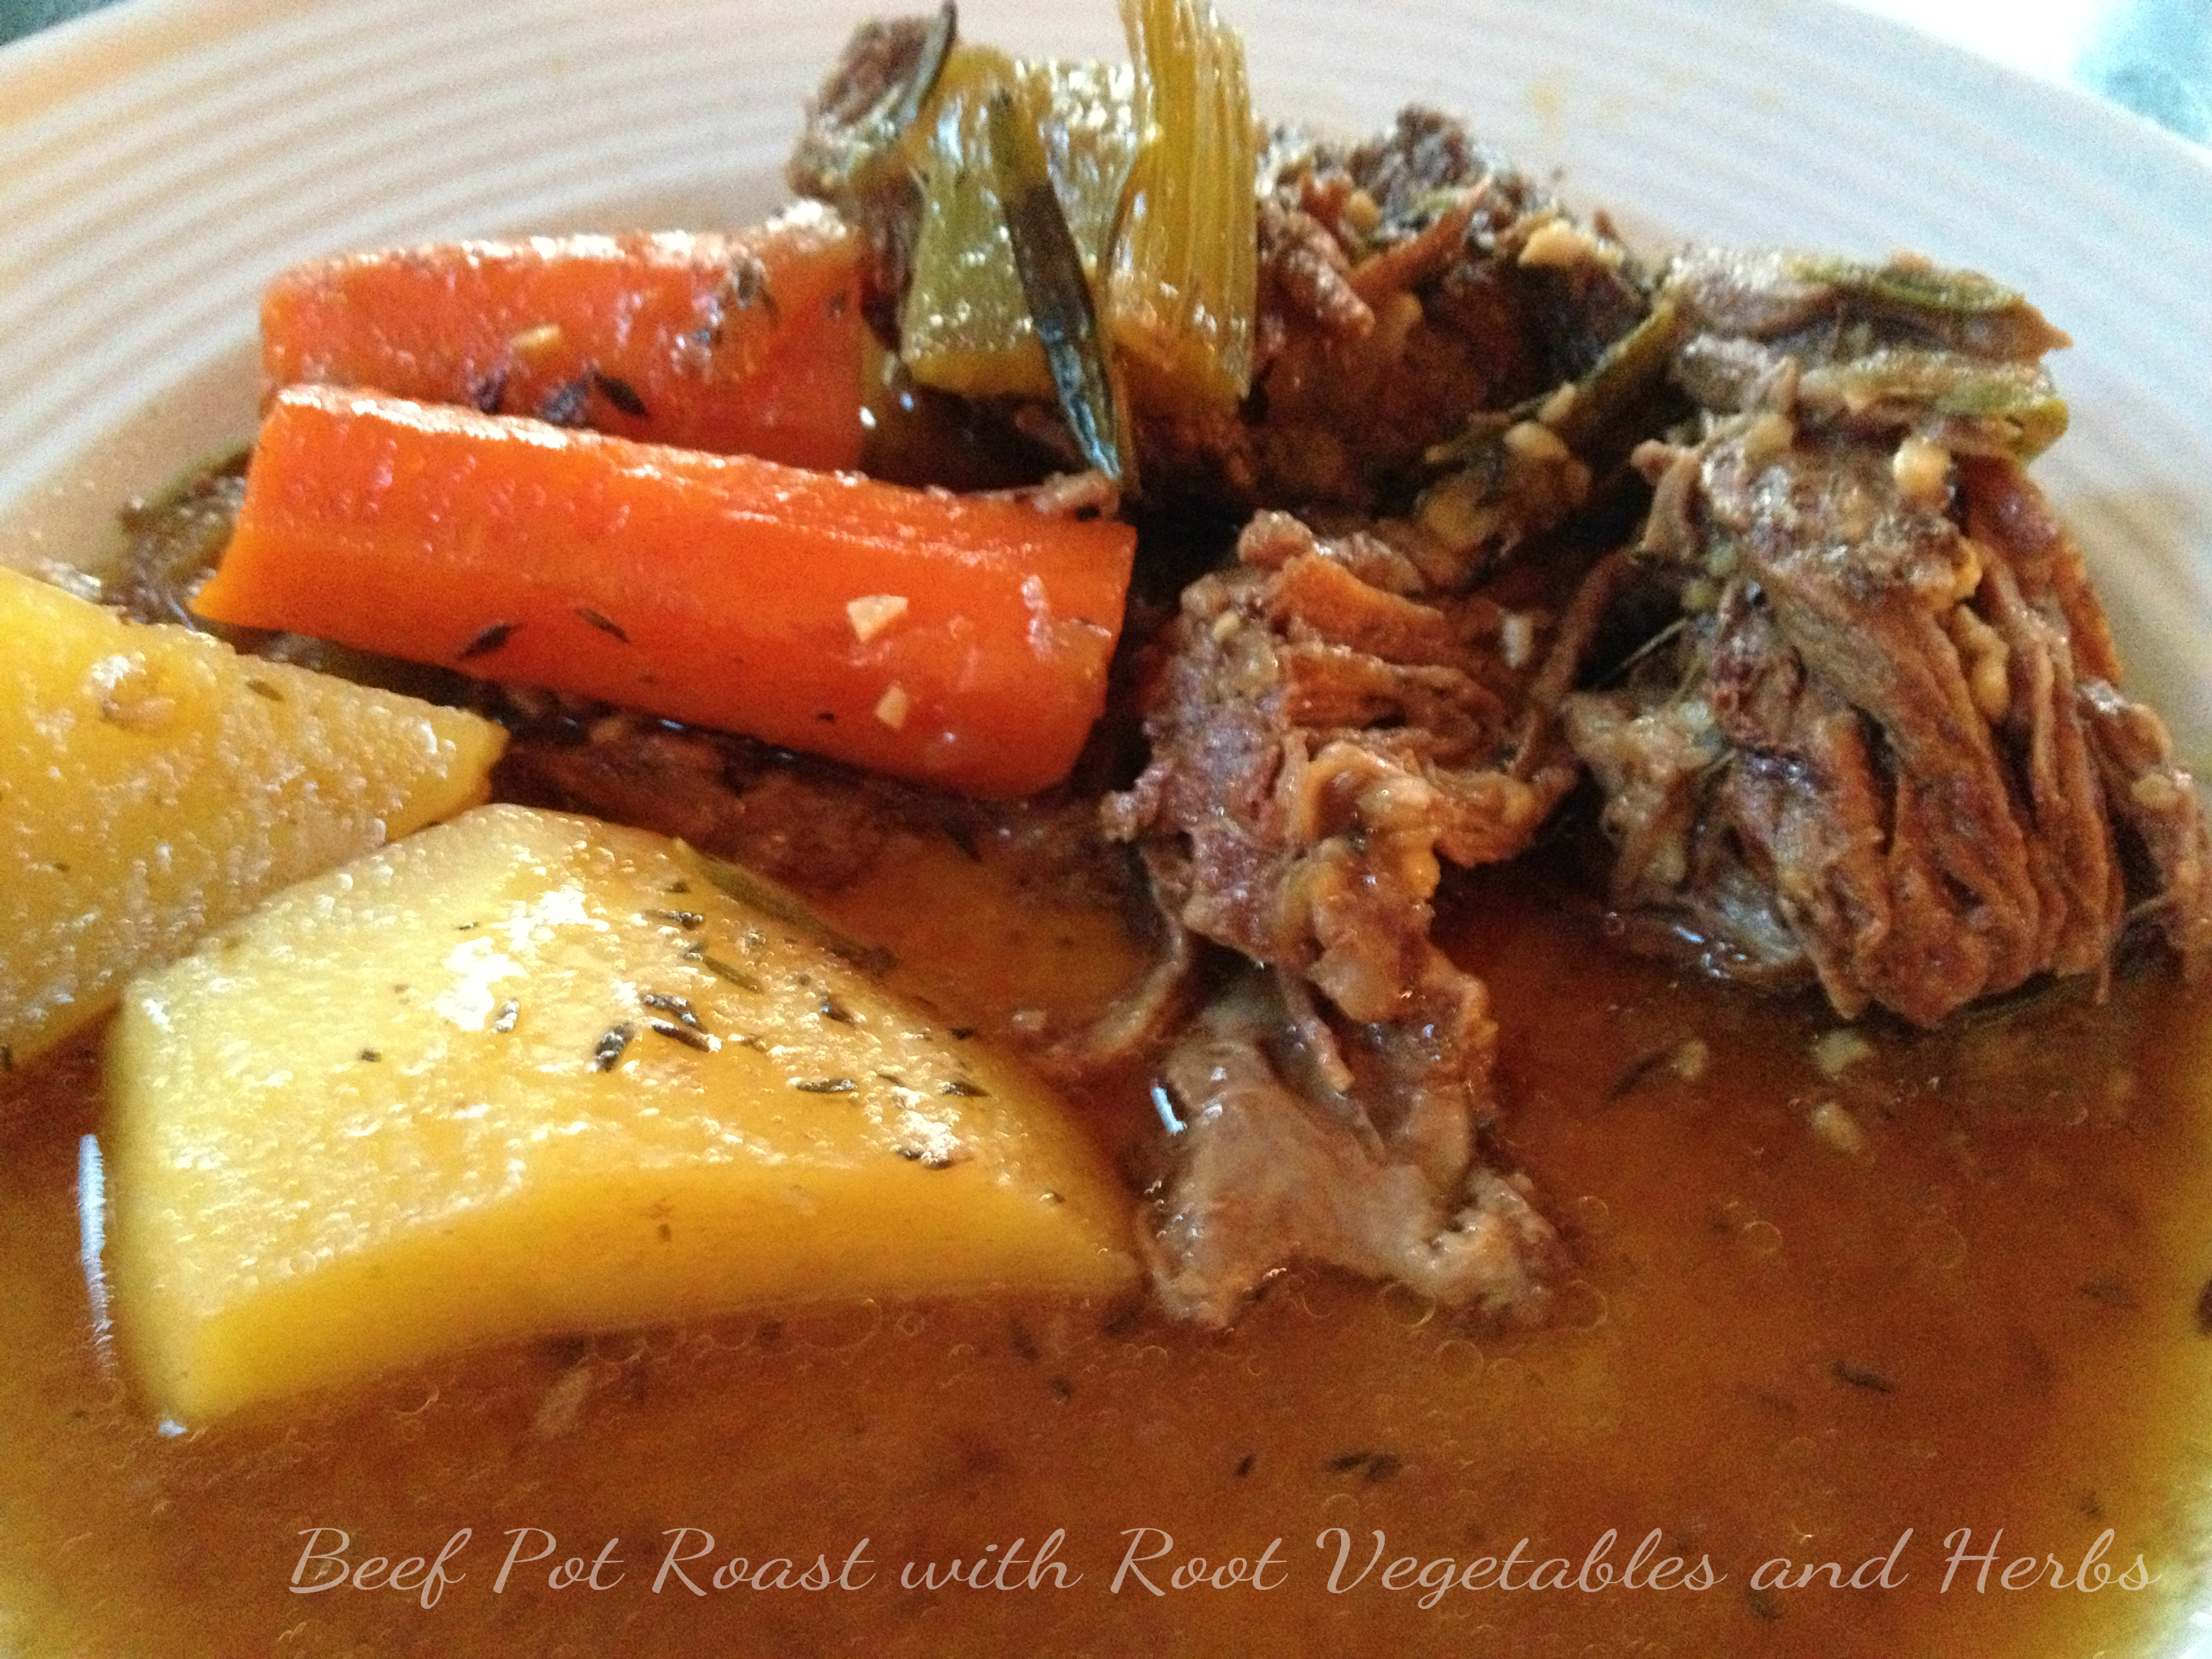 Last night I prepared this Beef Pot Roast Dinner with Root Vegetables ...